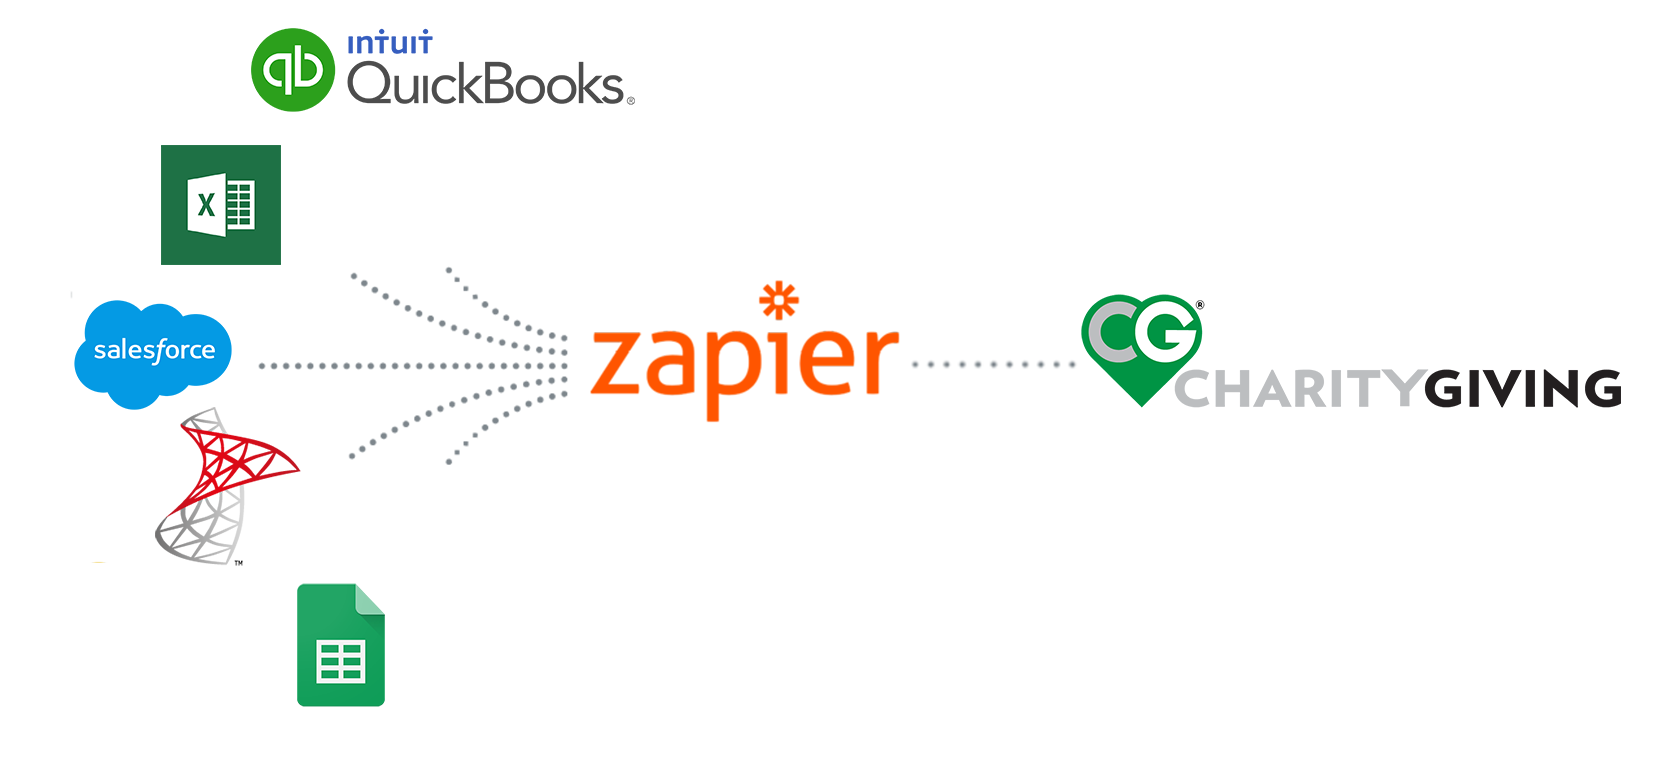 CharityGiving and Zapier integration